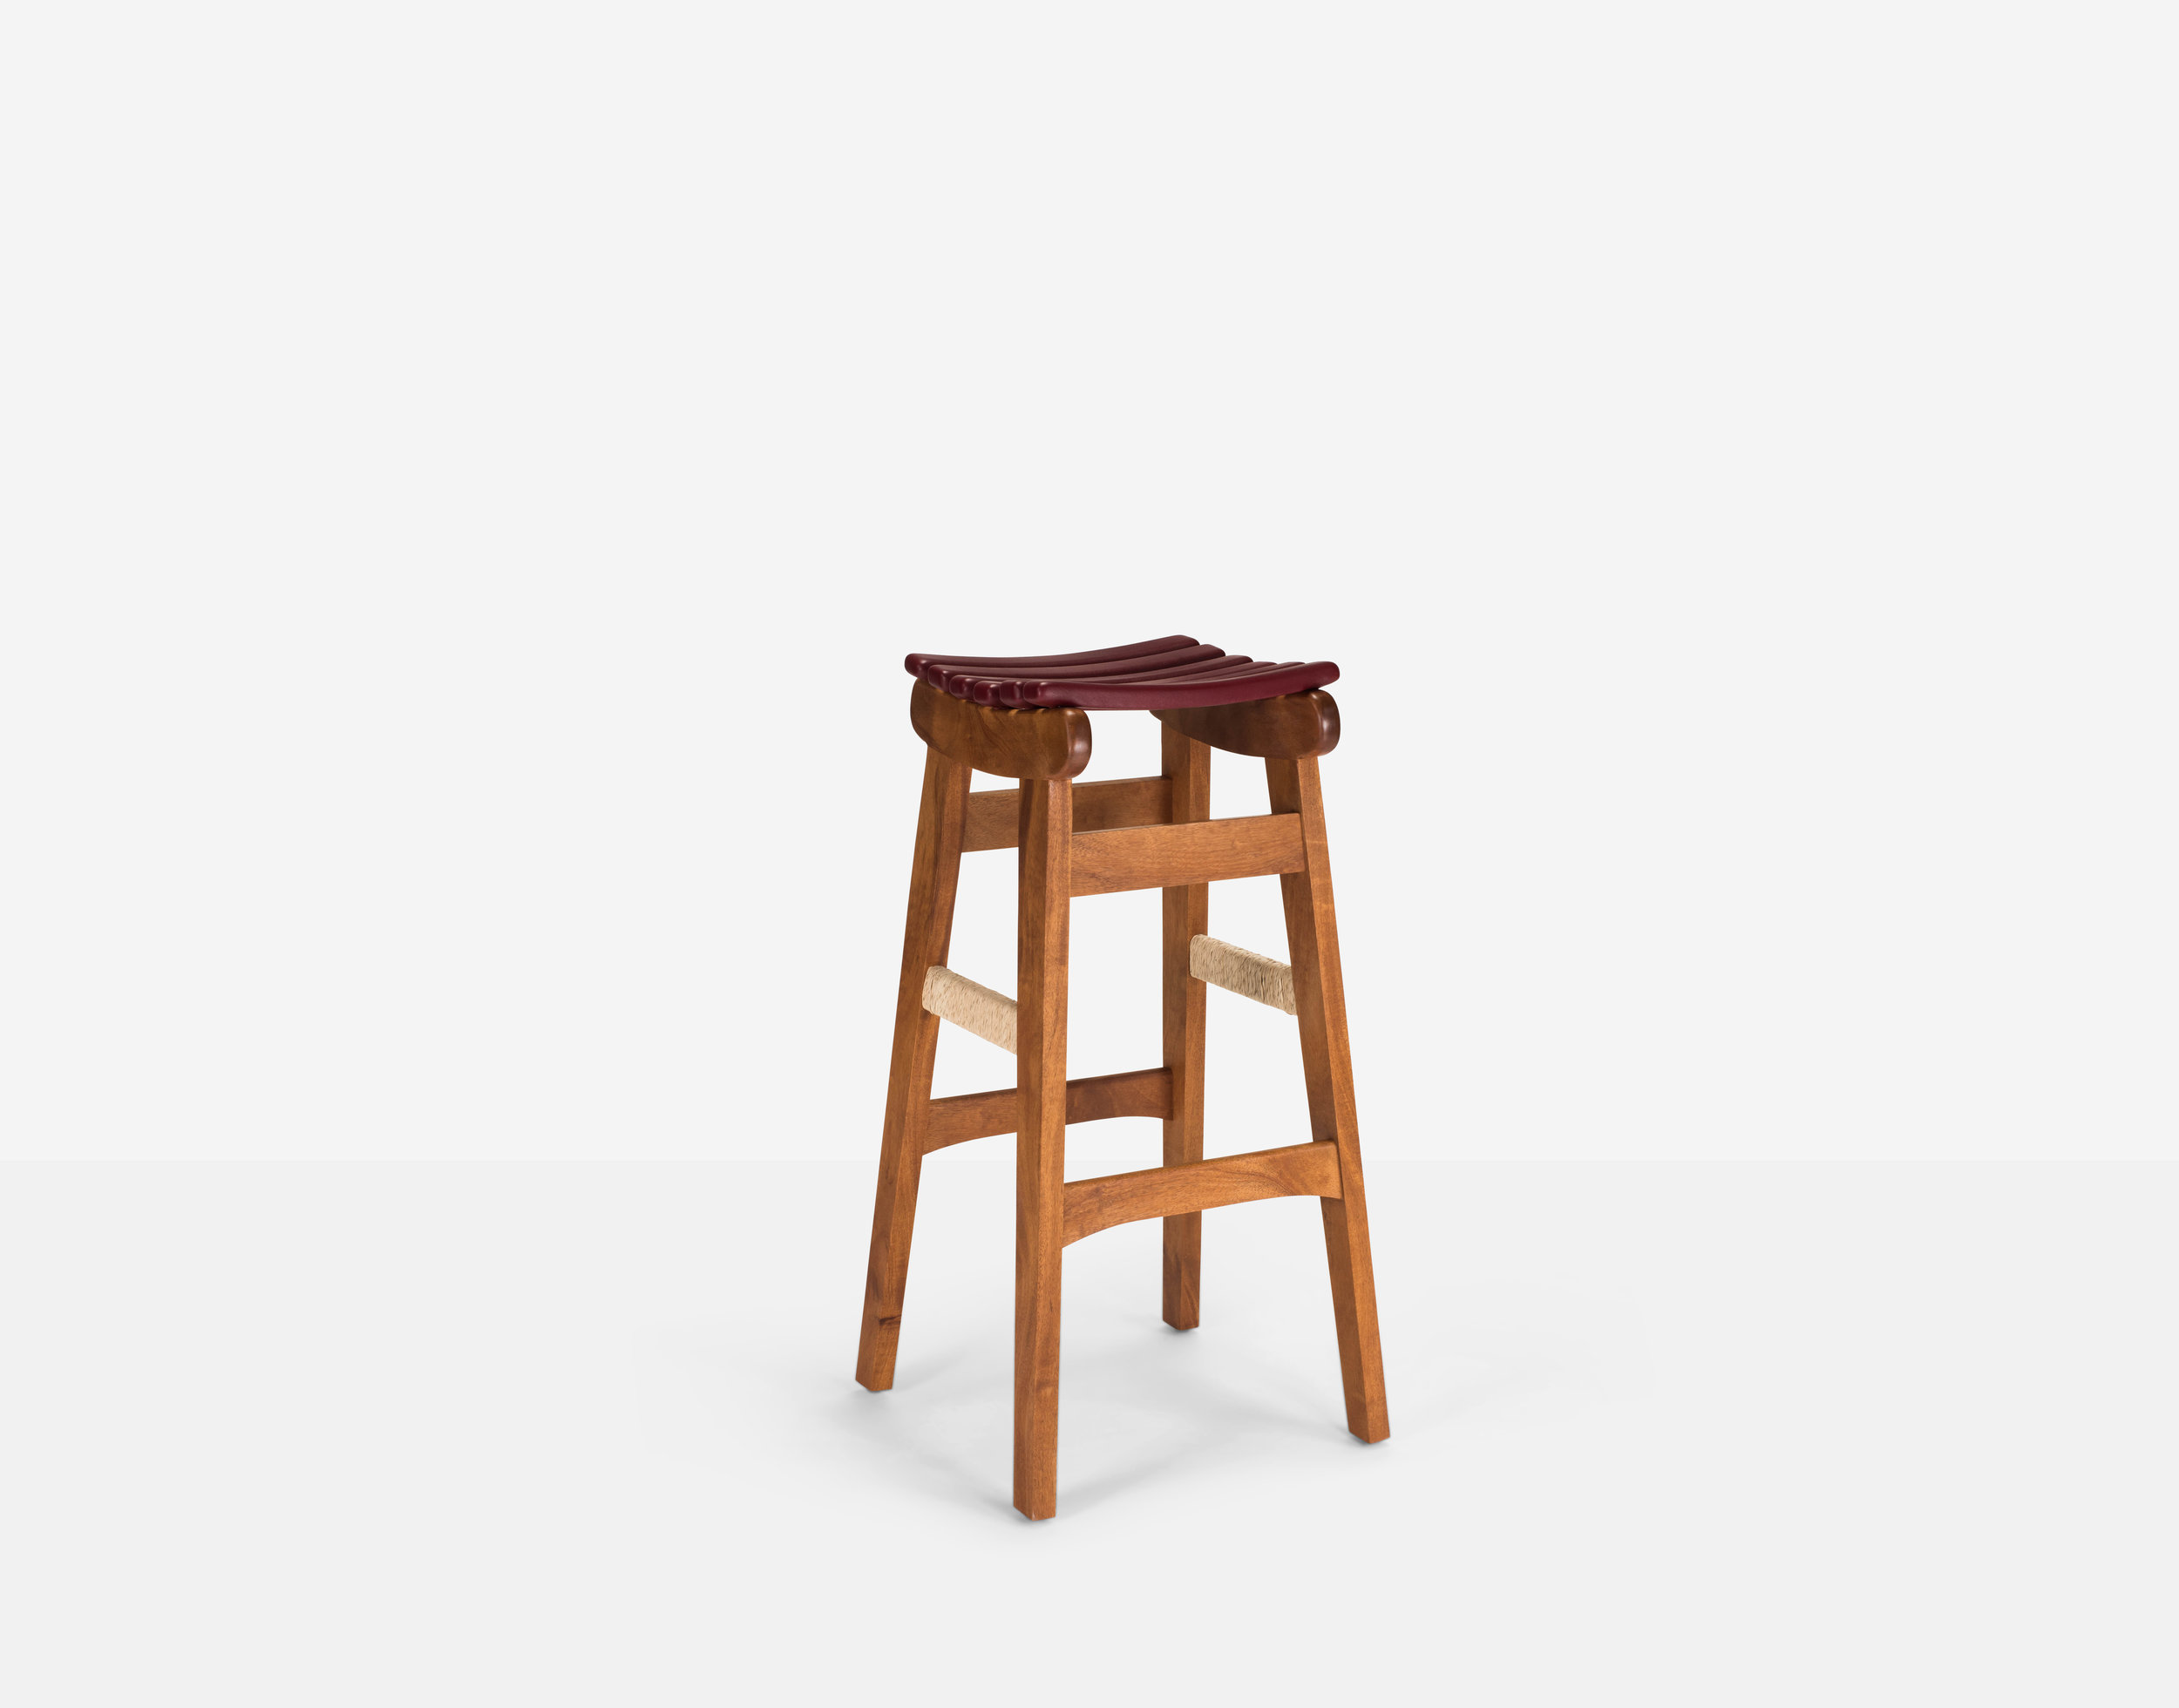 Luteca_MvB_San Miguelito-Bar-Stool_Mahogany-Red-Leather_FP-w.jpg